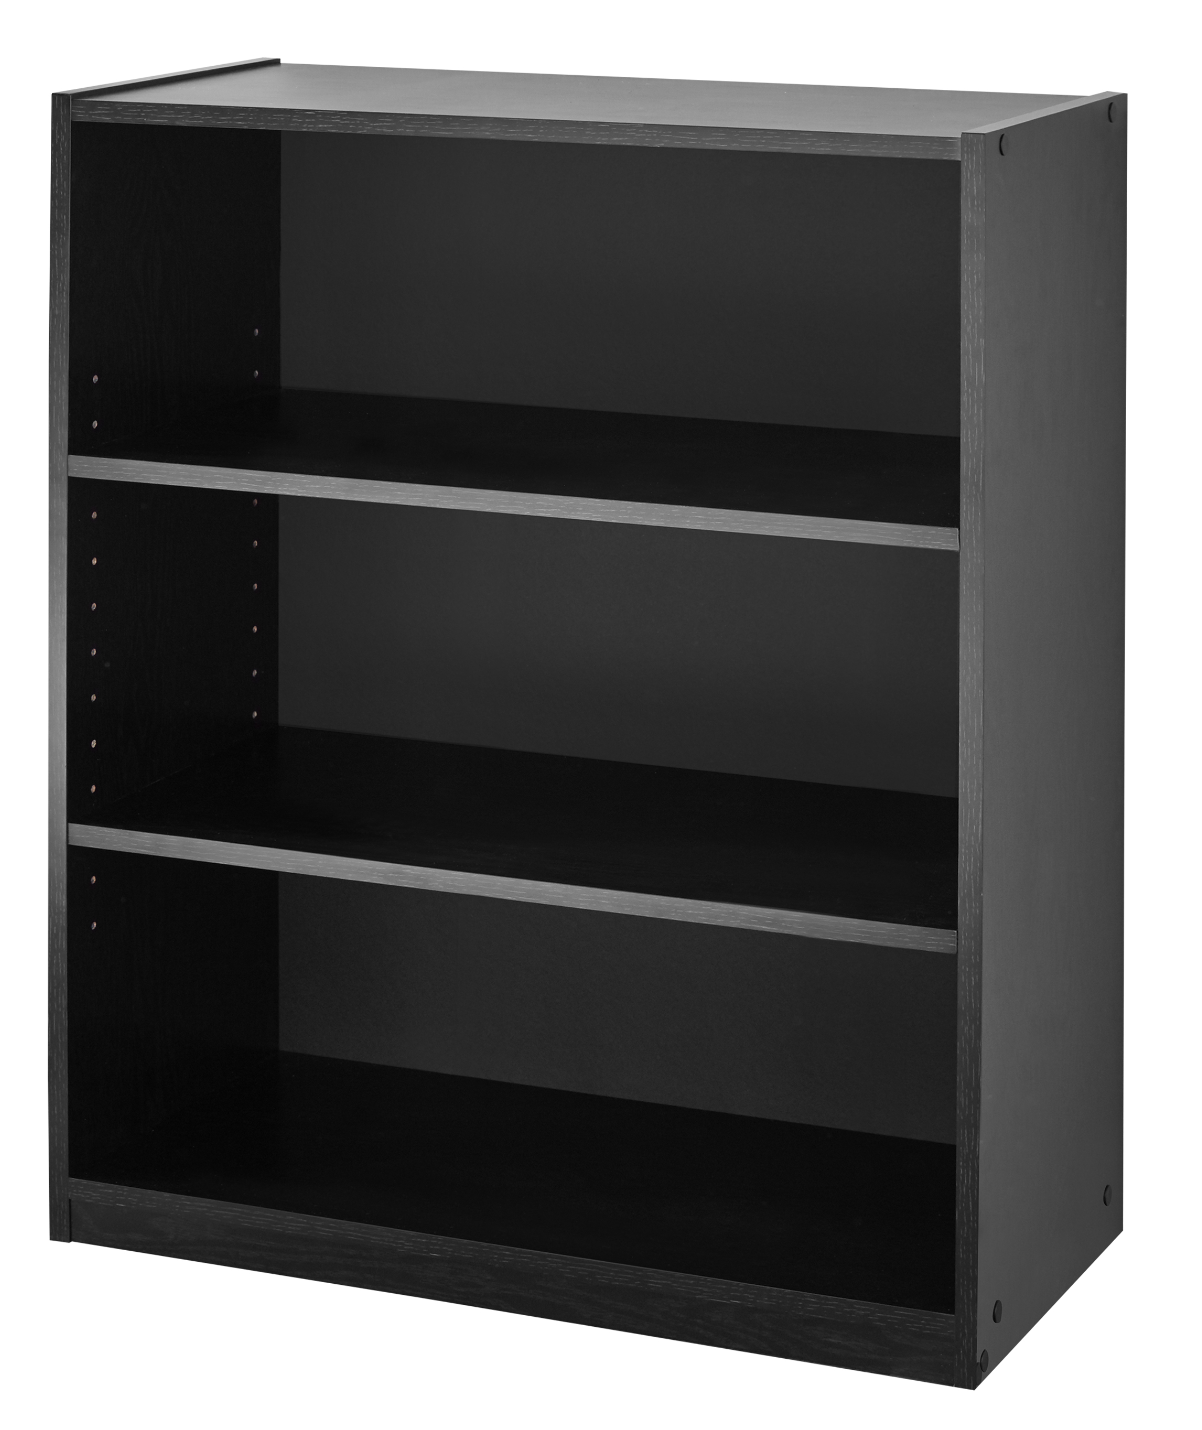 Mainstays 31 3 Shelf Bookcase Black Walmart Com Walmart Com